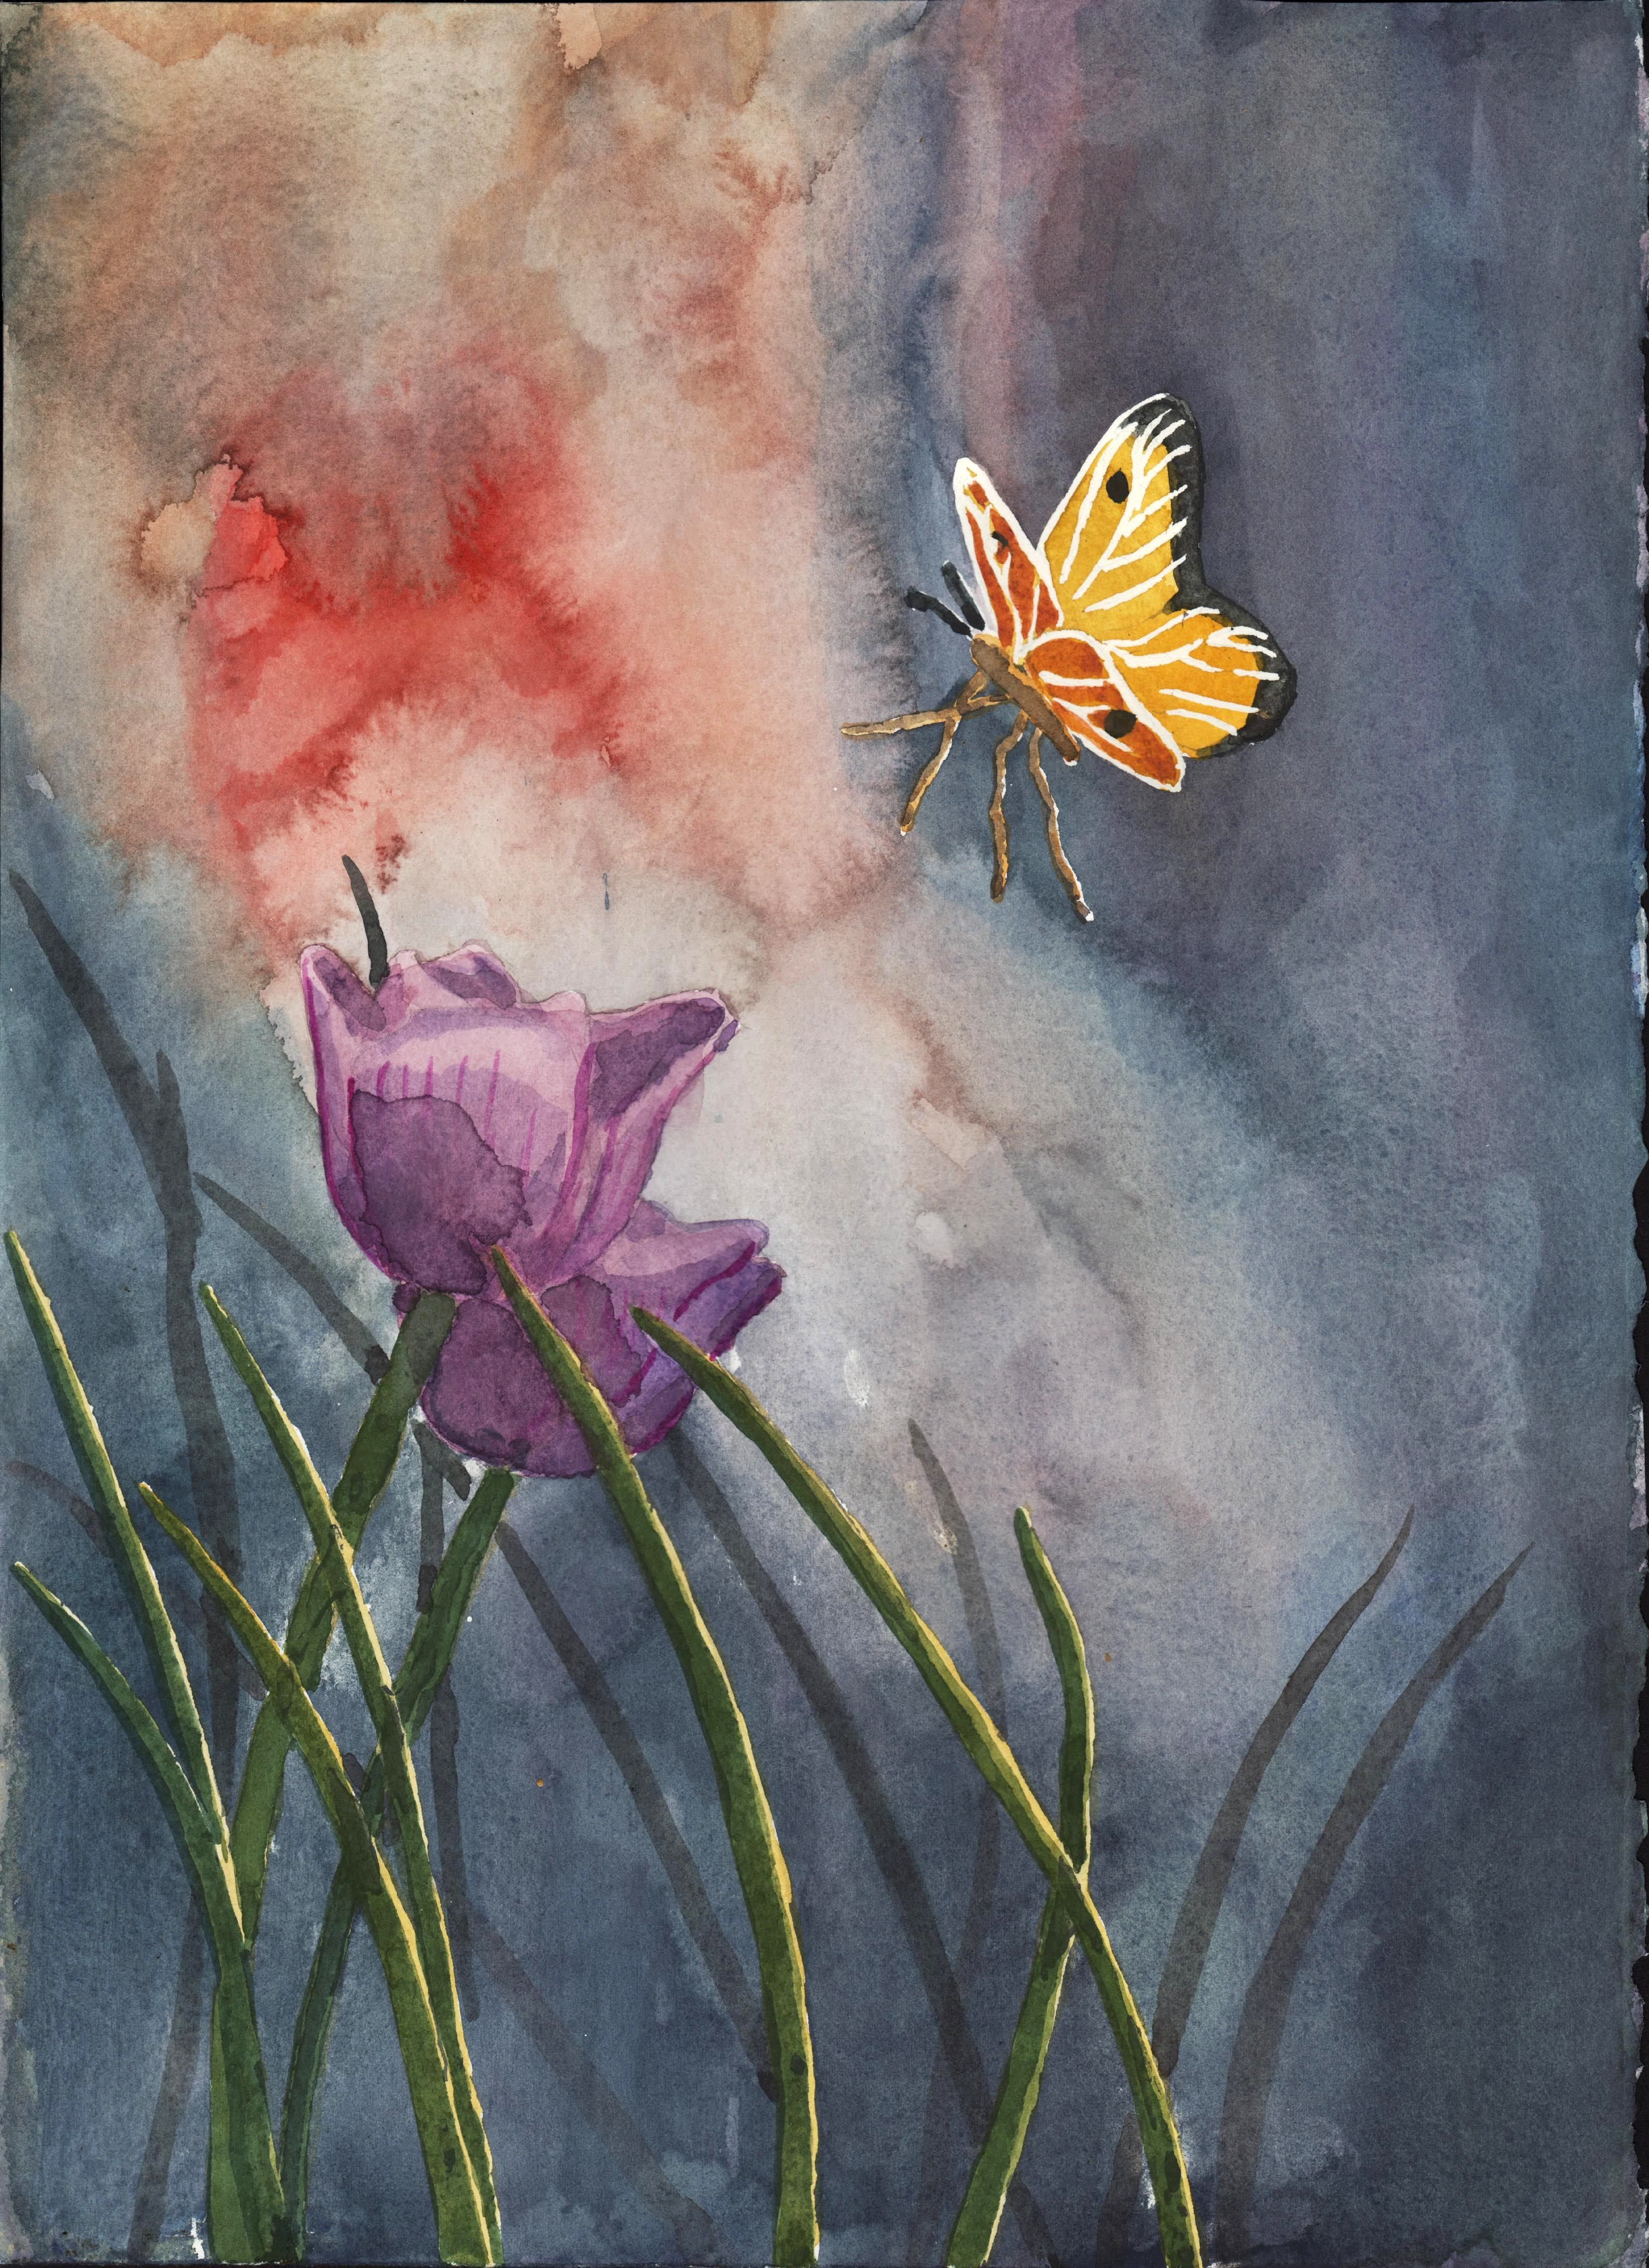 water color by mitch delorey